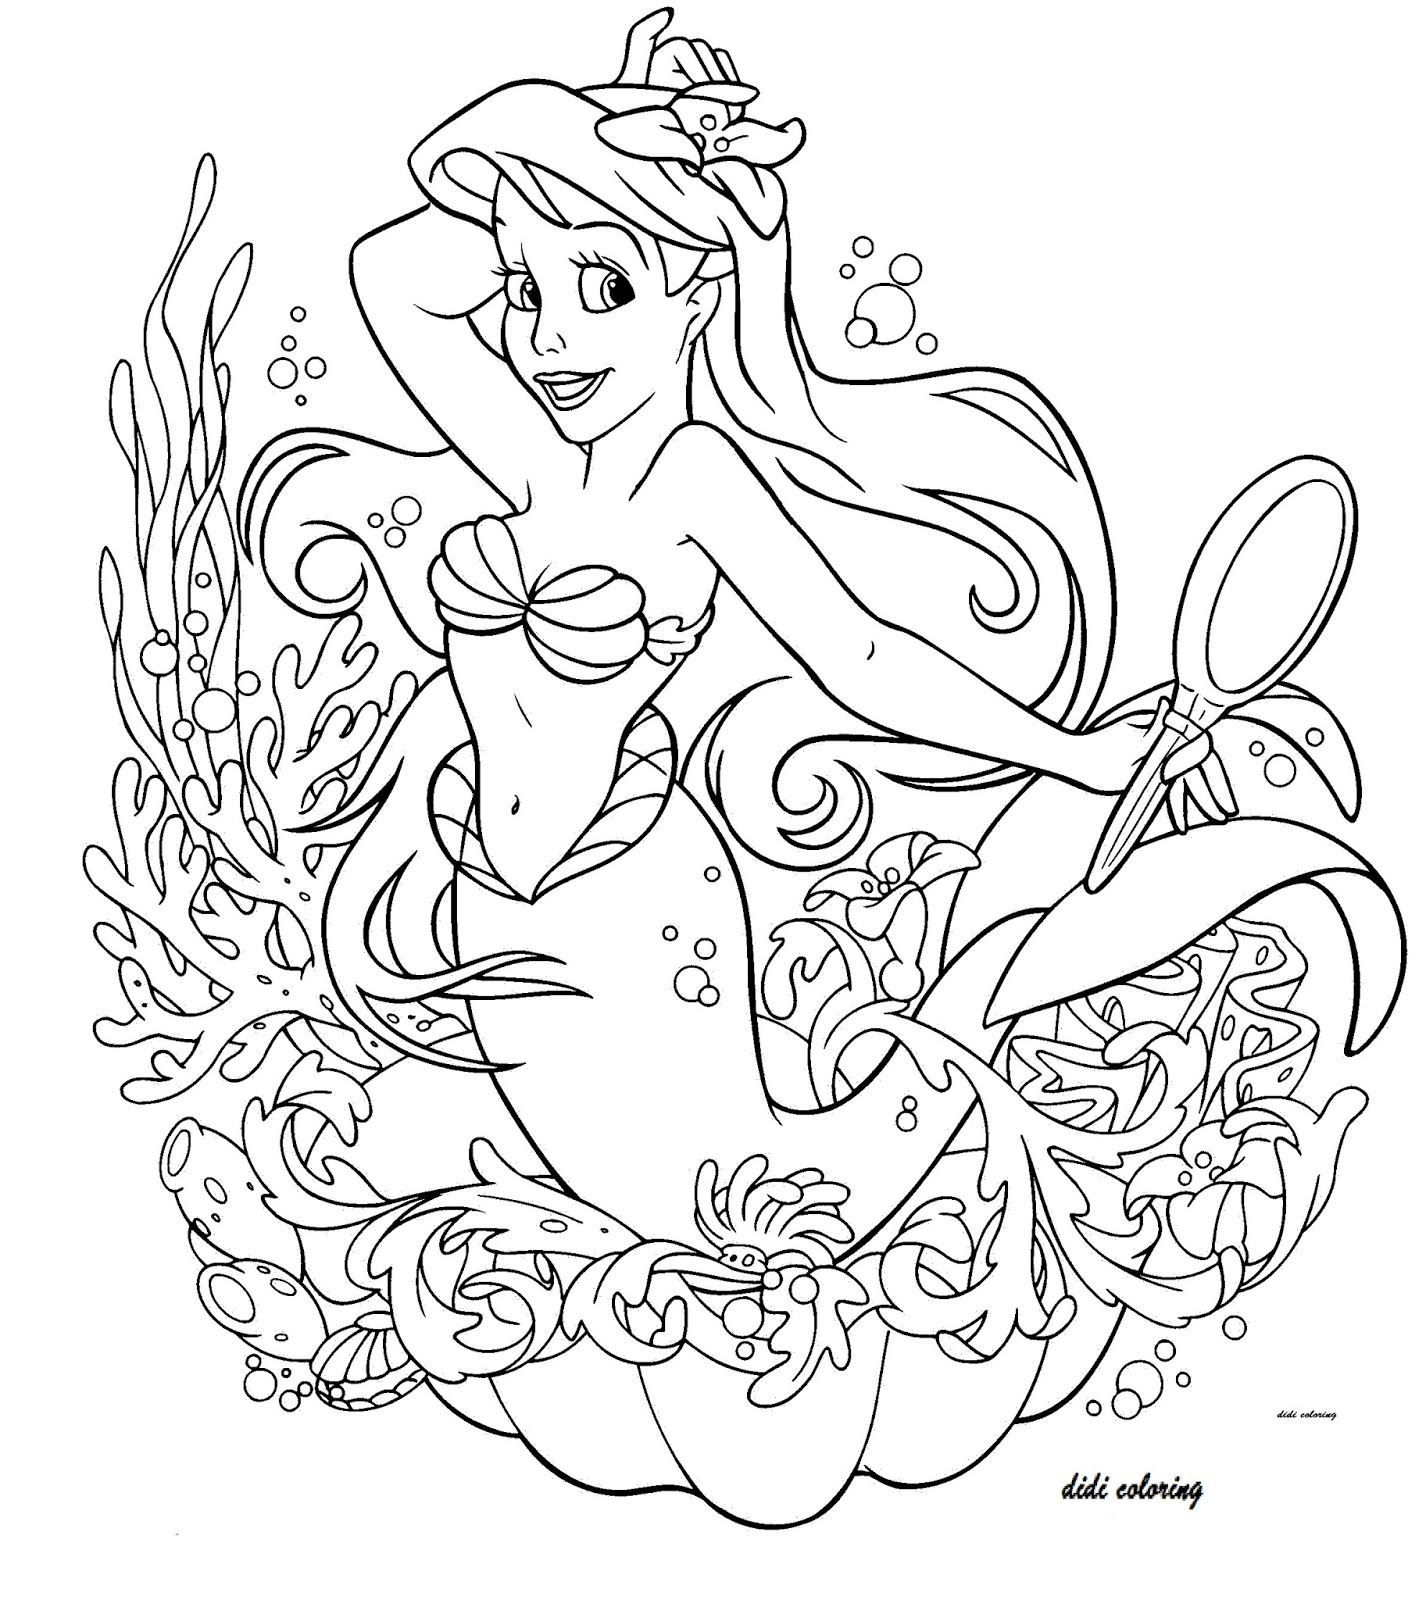 disney princess coloring worksheets disney princess coloring pages team colors princess disney worksheets coloring